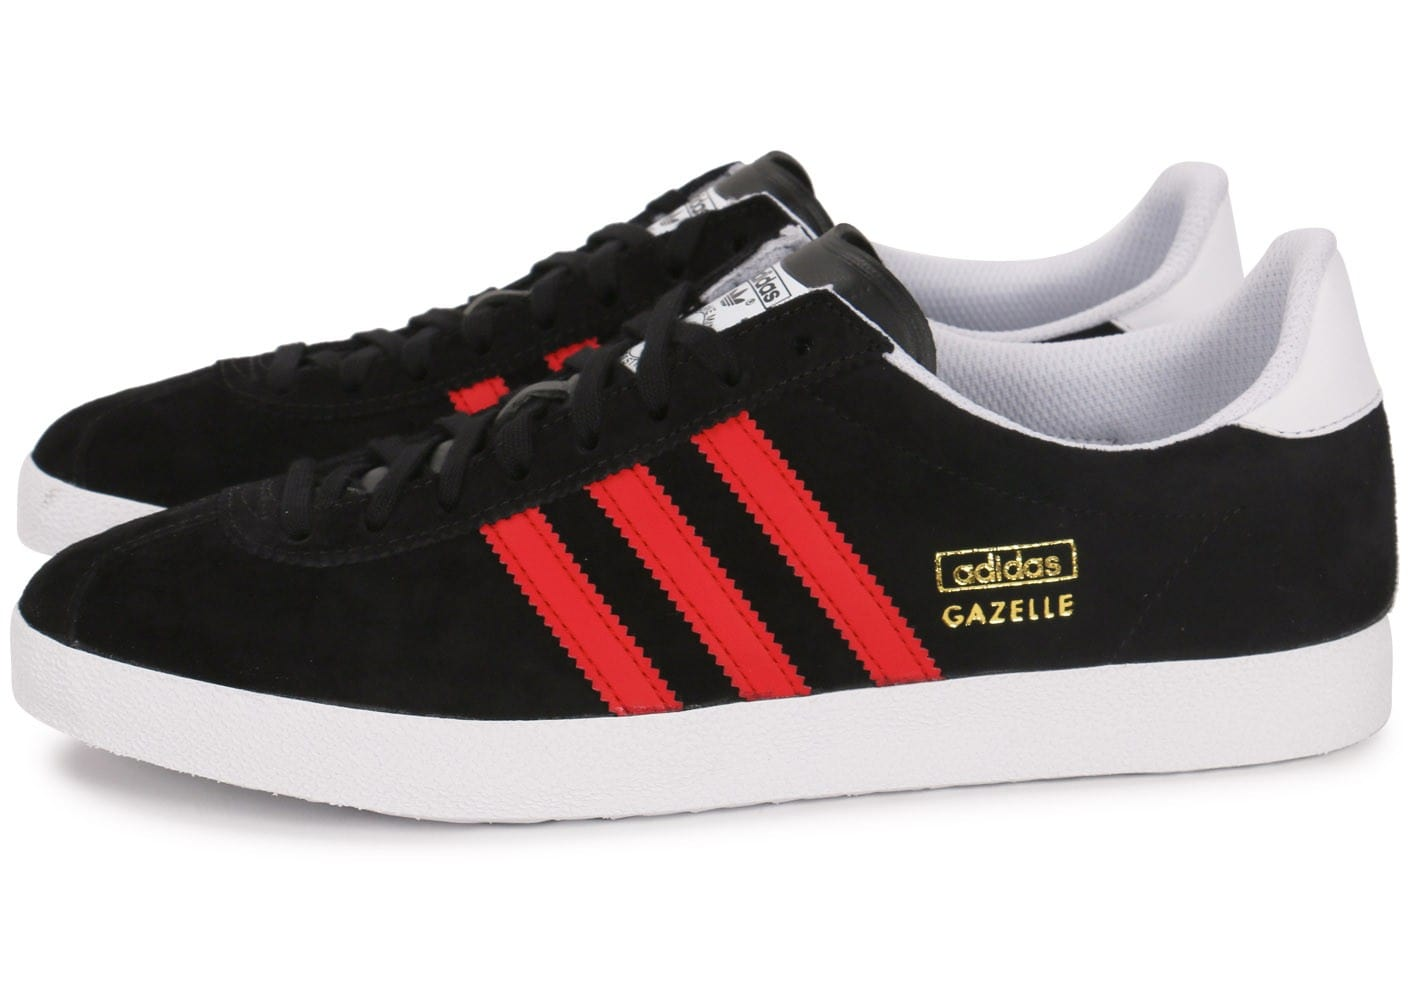 Gazelle Et Chaussures Og Rouge Baskets Homme Chausport Adidas Noire y0wO8mNnv